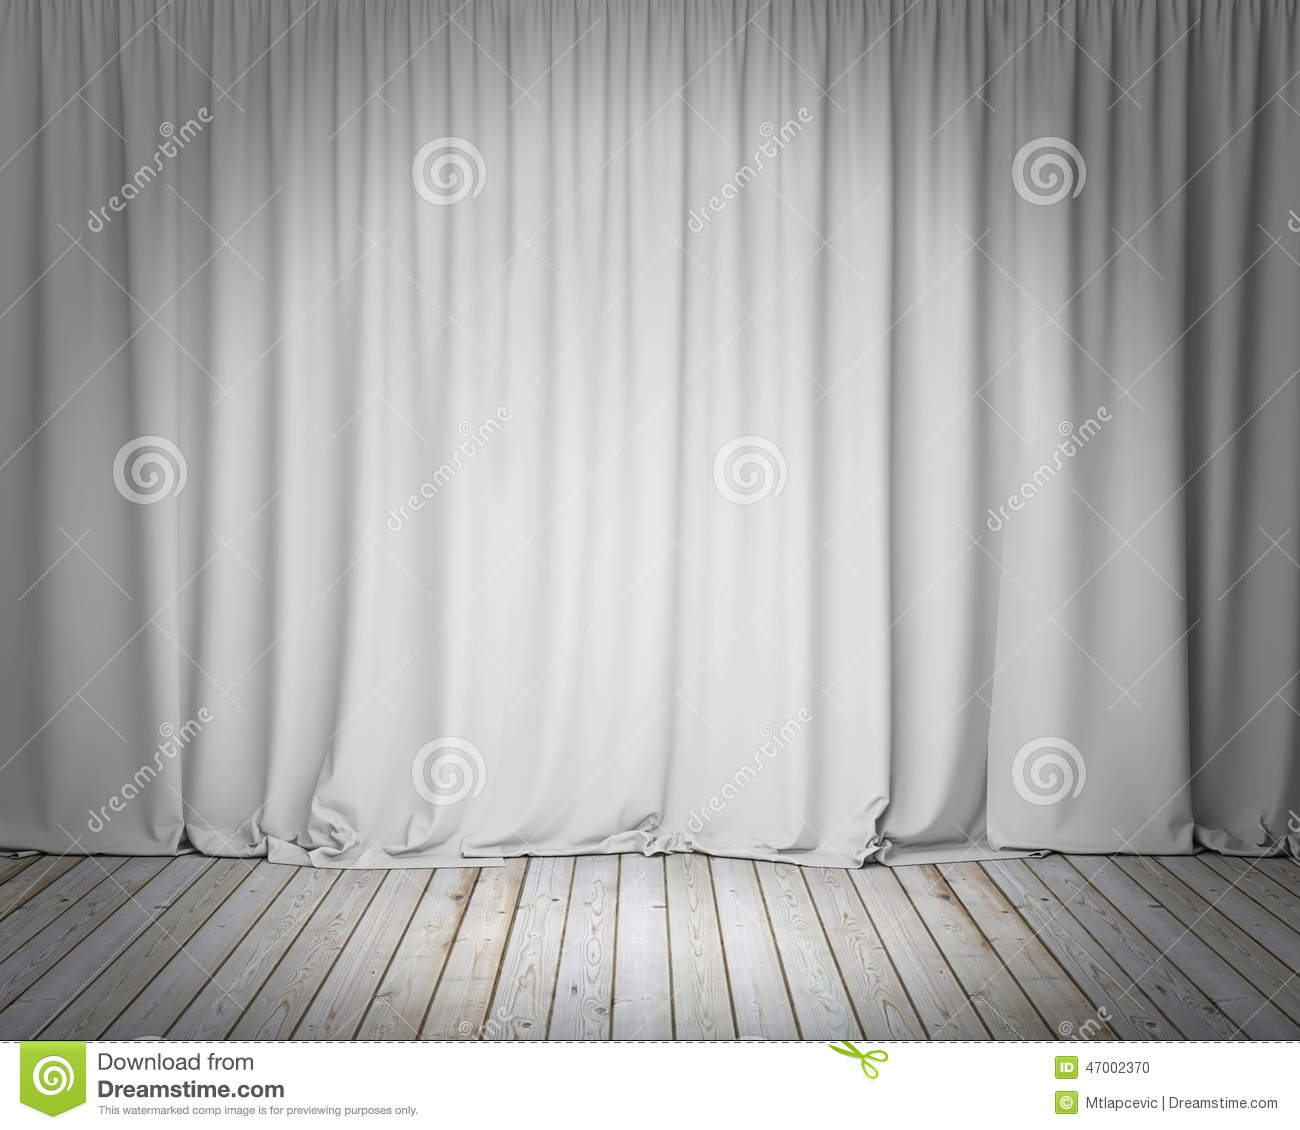 White Stage Curtain With Wooden Floor Background Stock